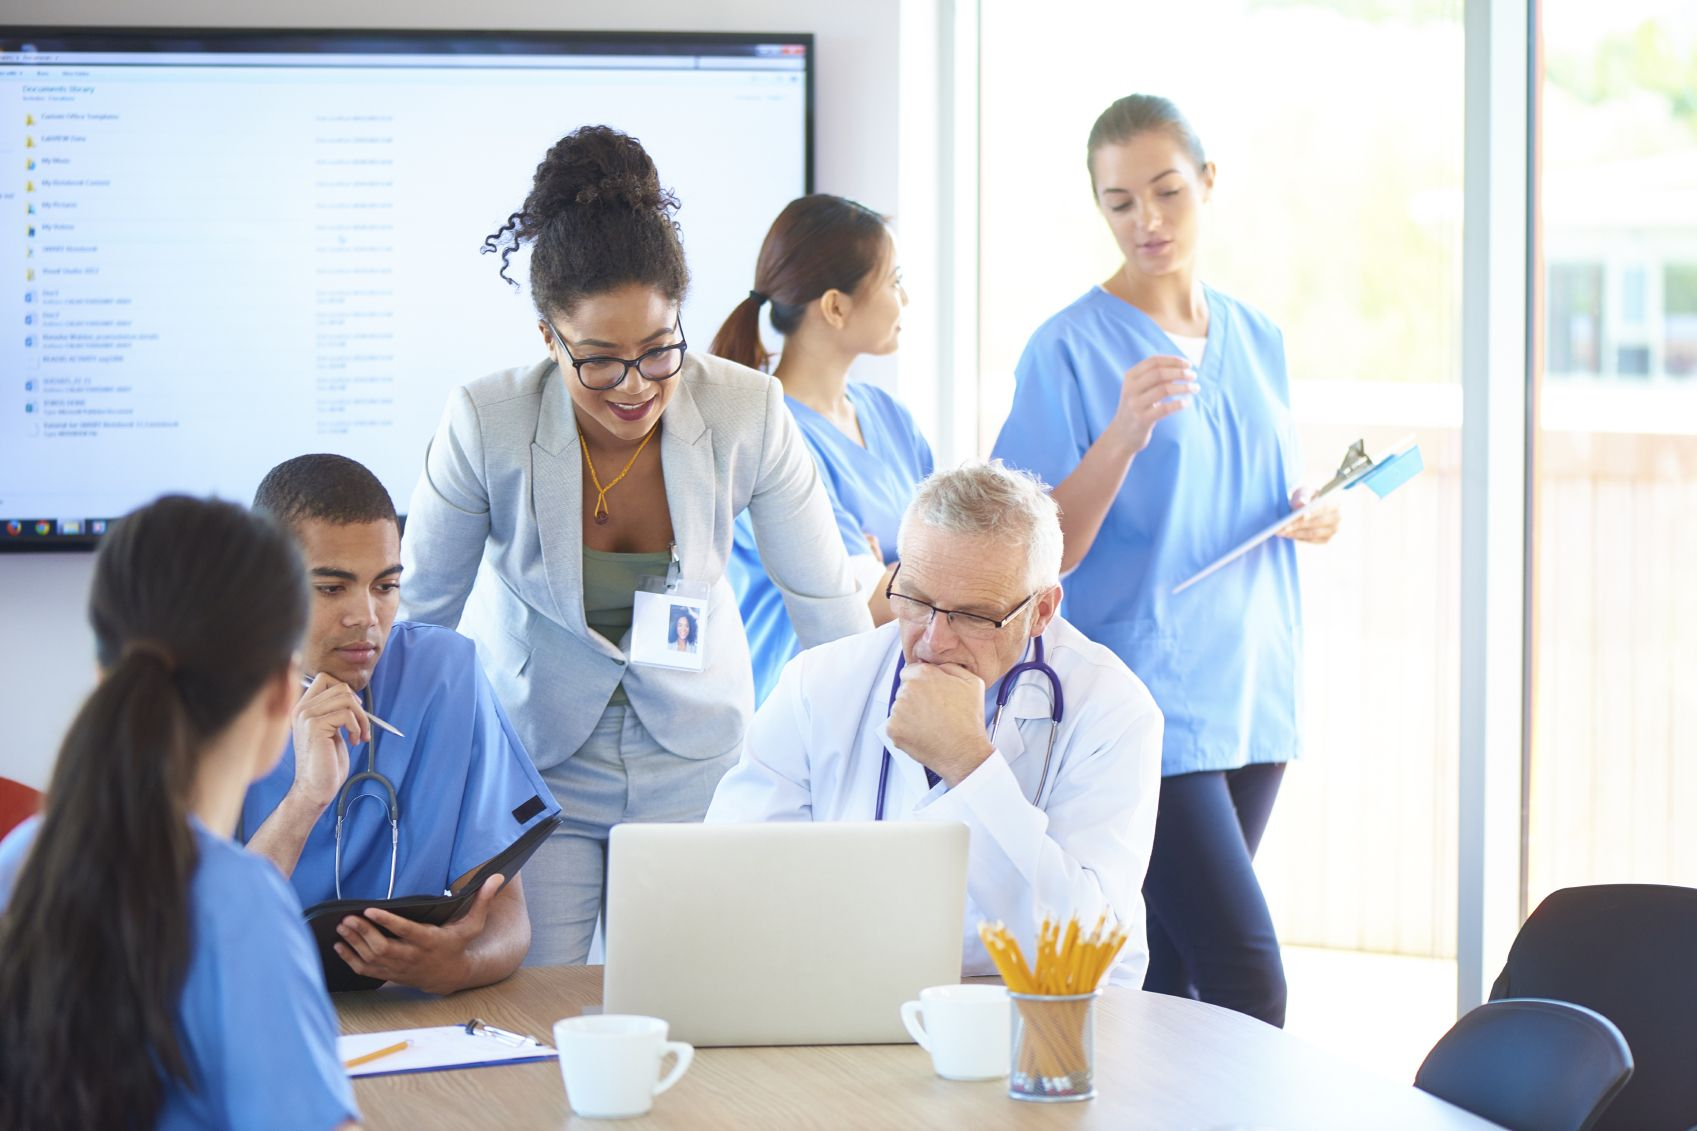 Healthcare Workflow Solutions Company Compares Asterisk